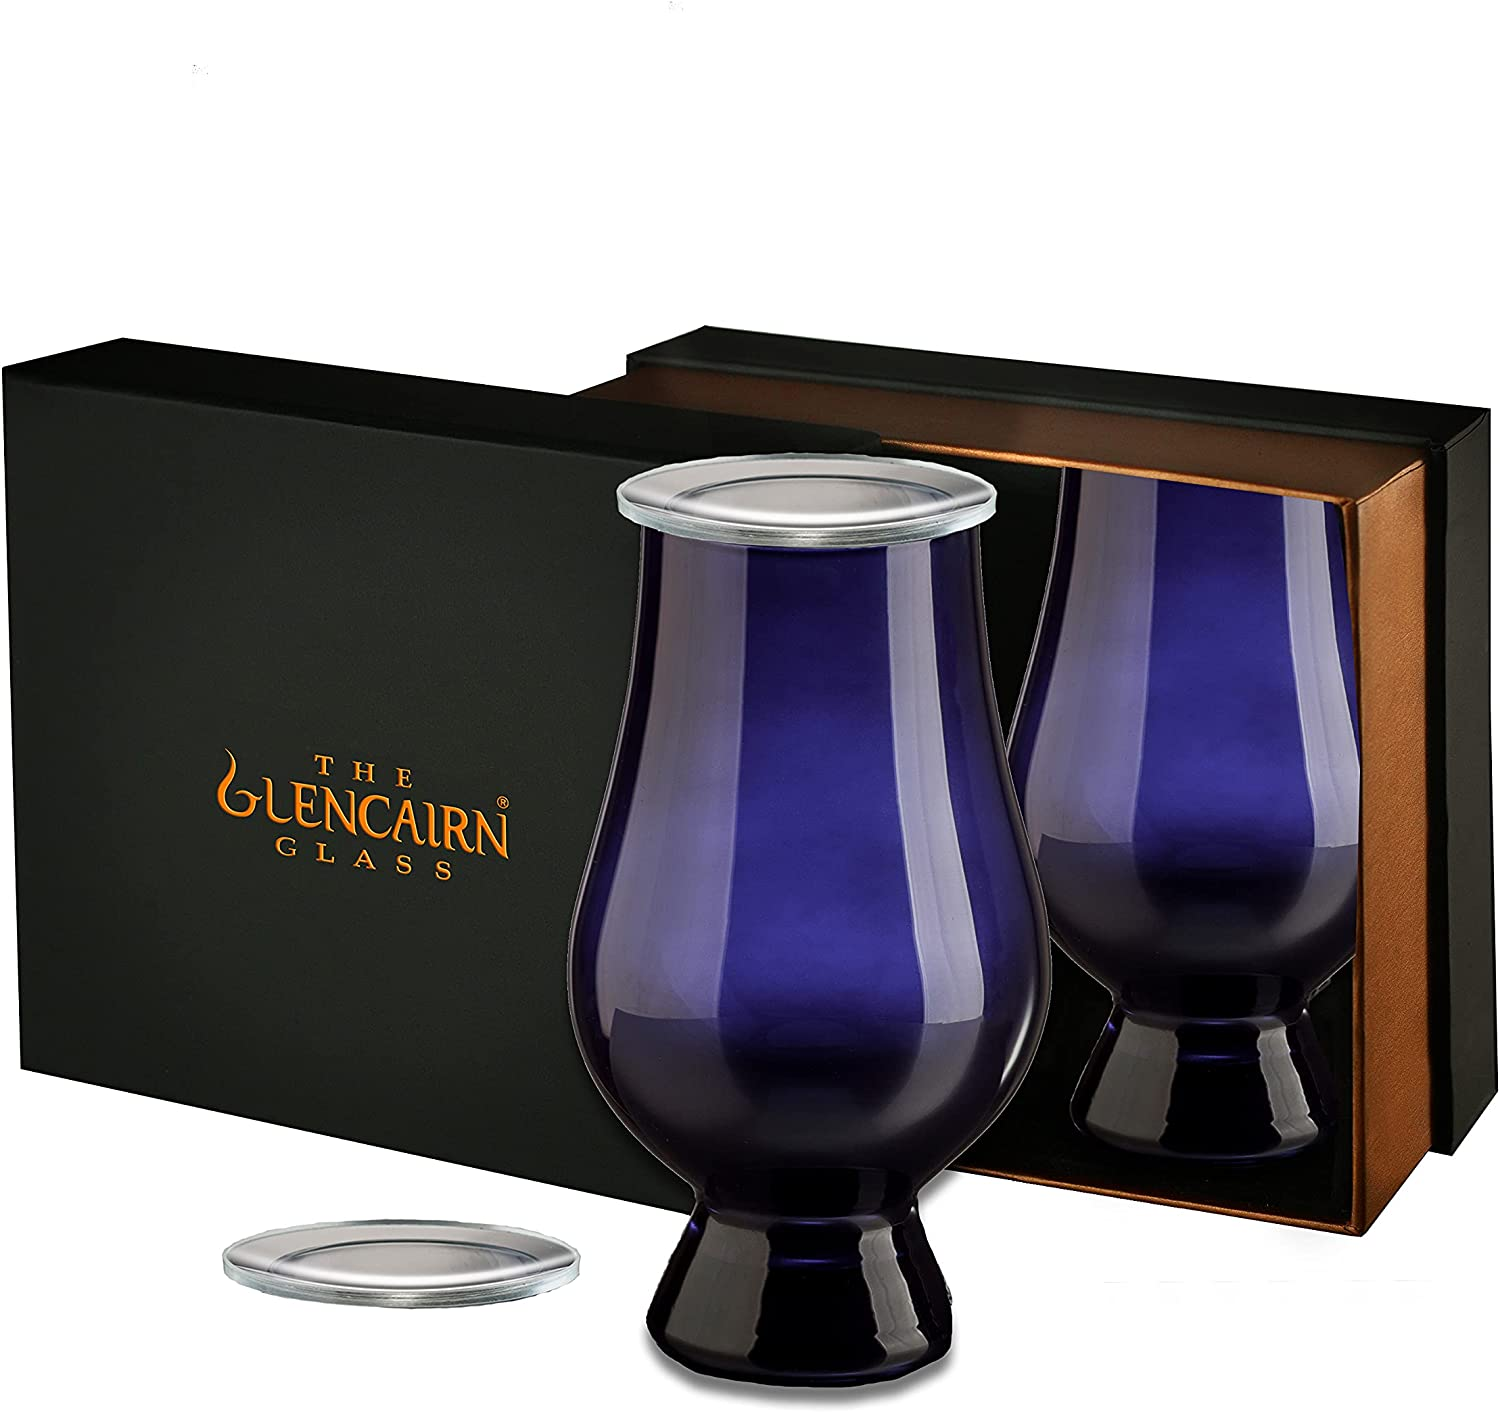 Blue Dallas Mall Glencairn Las Vegas Mall Whisky Glass + Watch 2 Presenta Set Covers of in